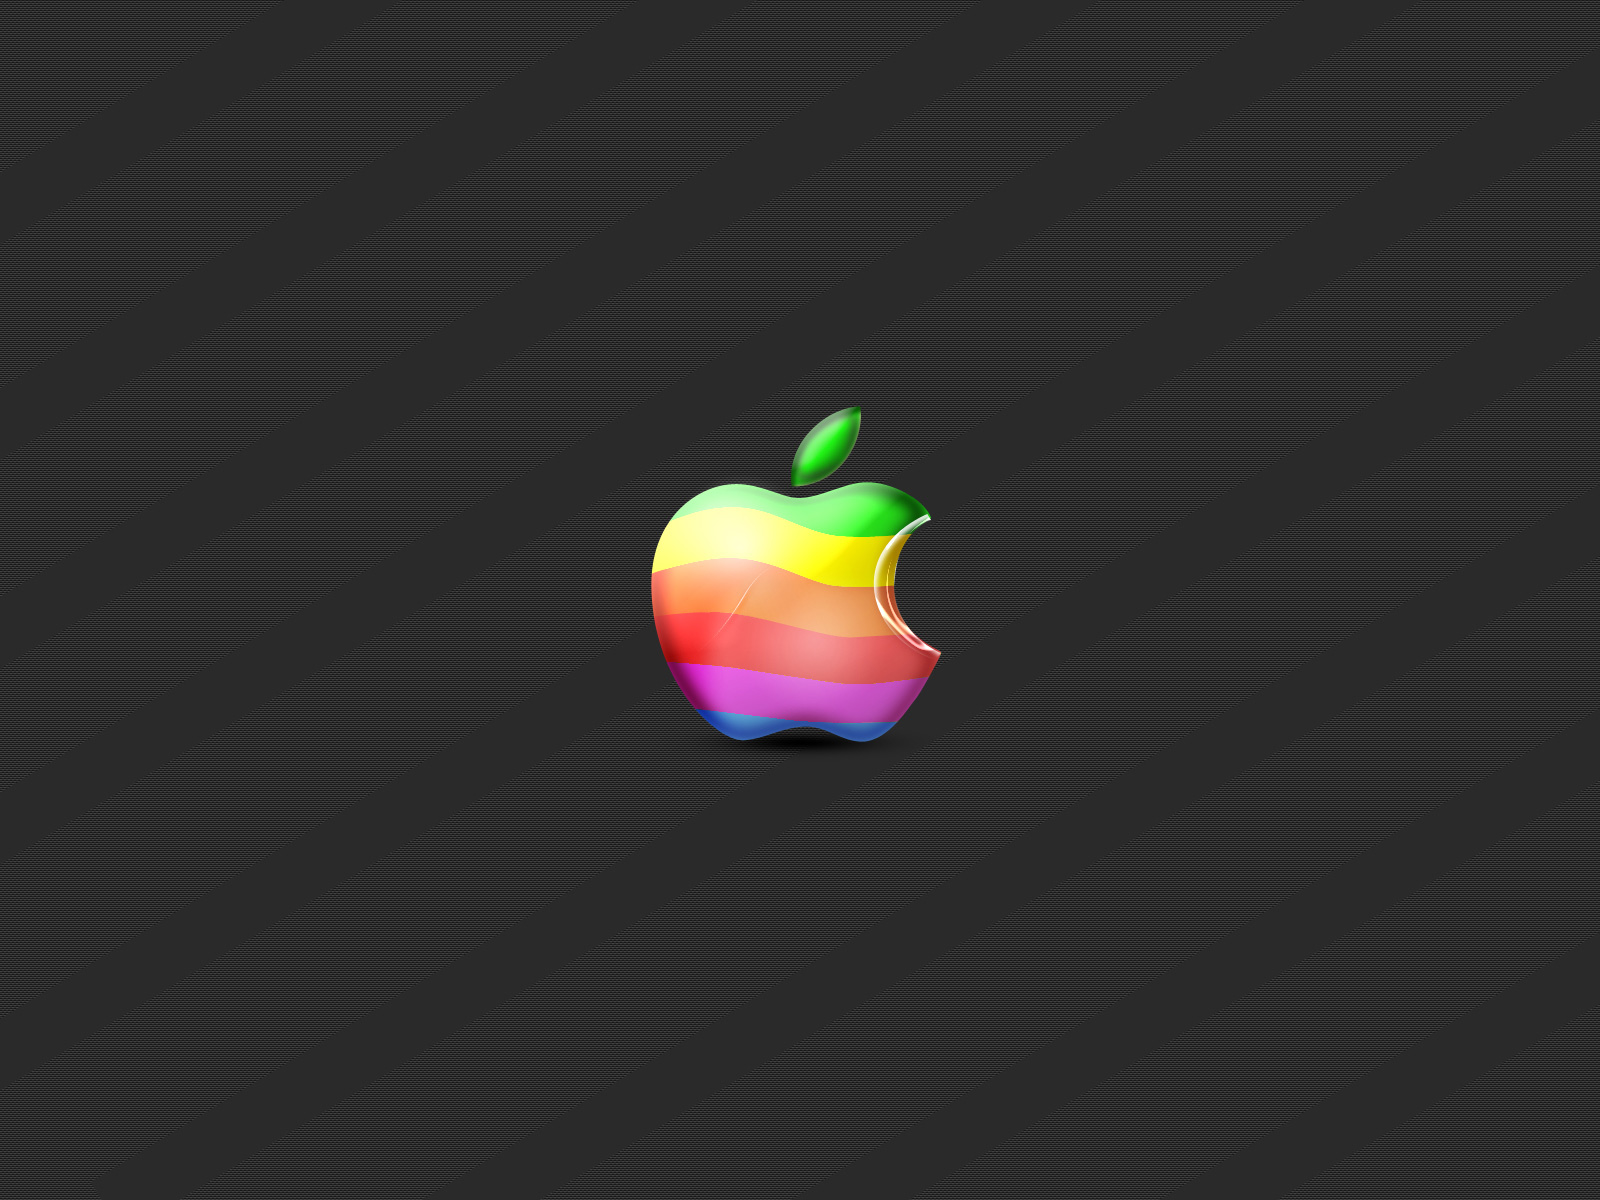 cool apple wallpaper cool wallpaper cool wallpaper for desktop cool 1600x1200